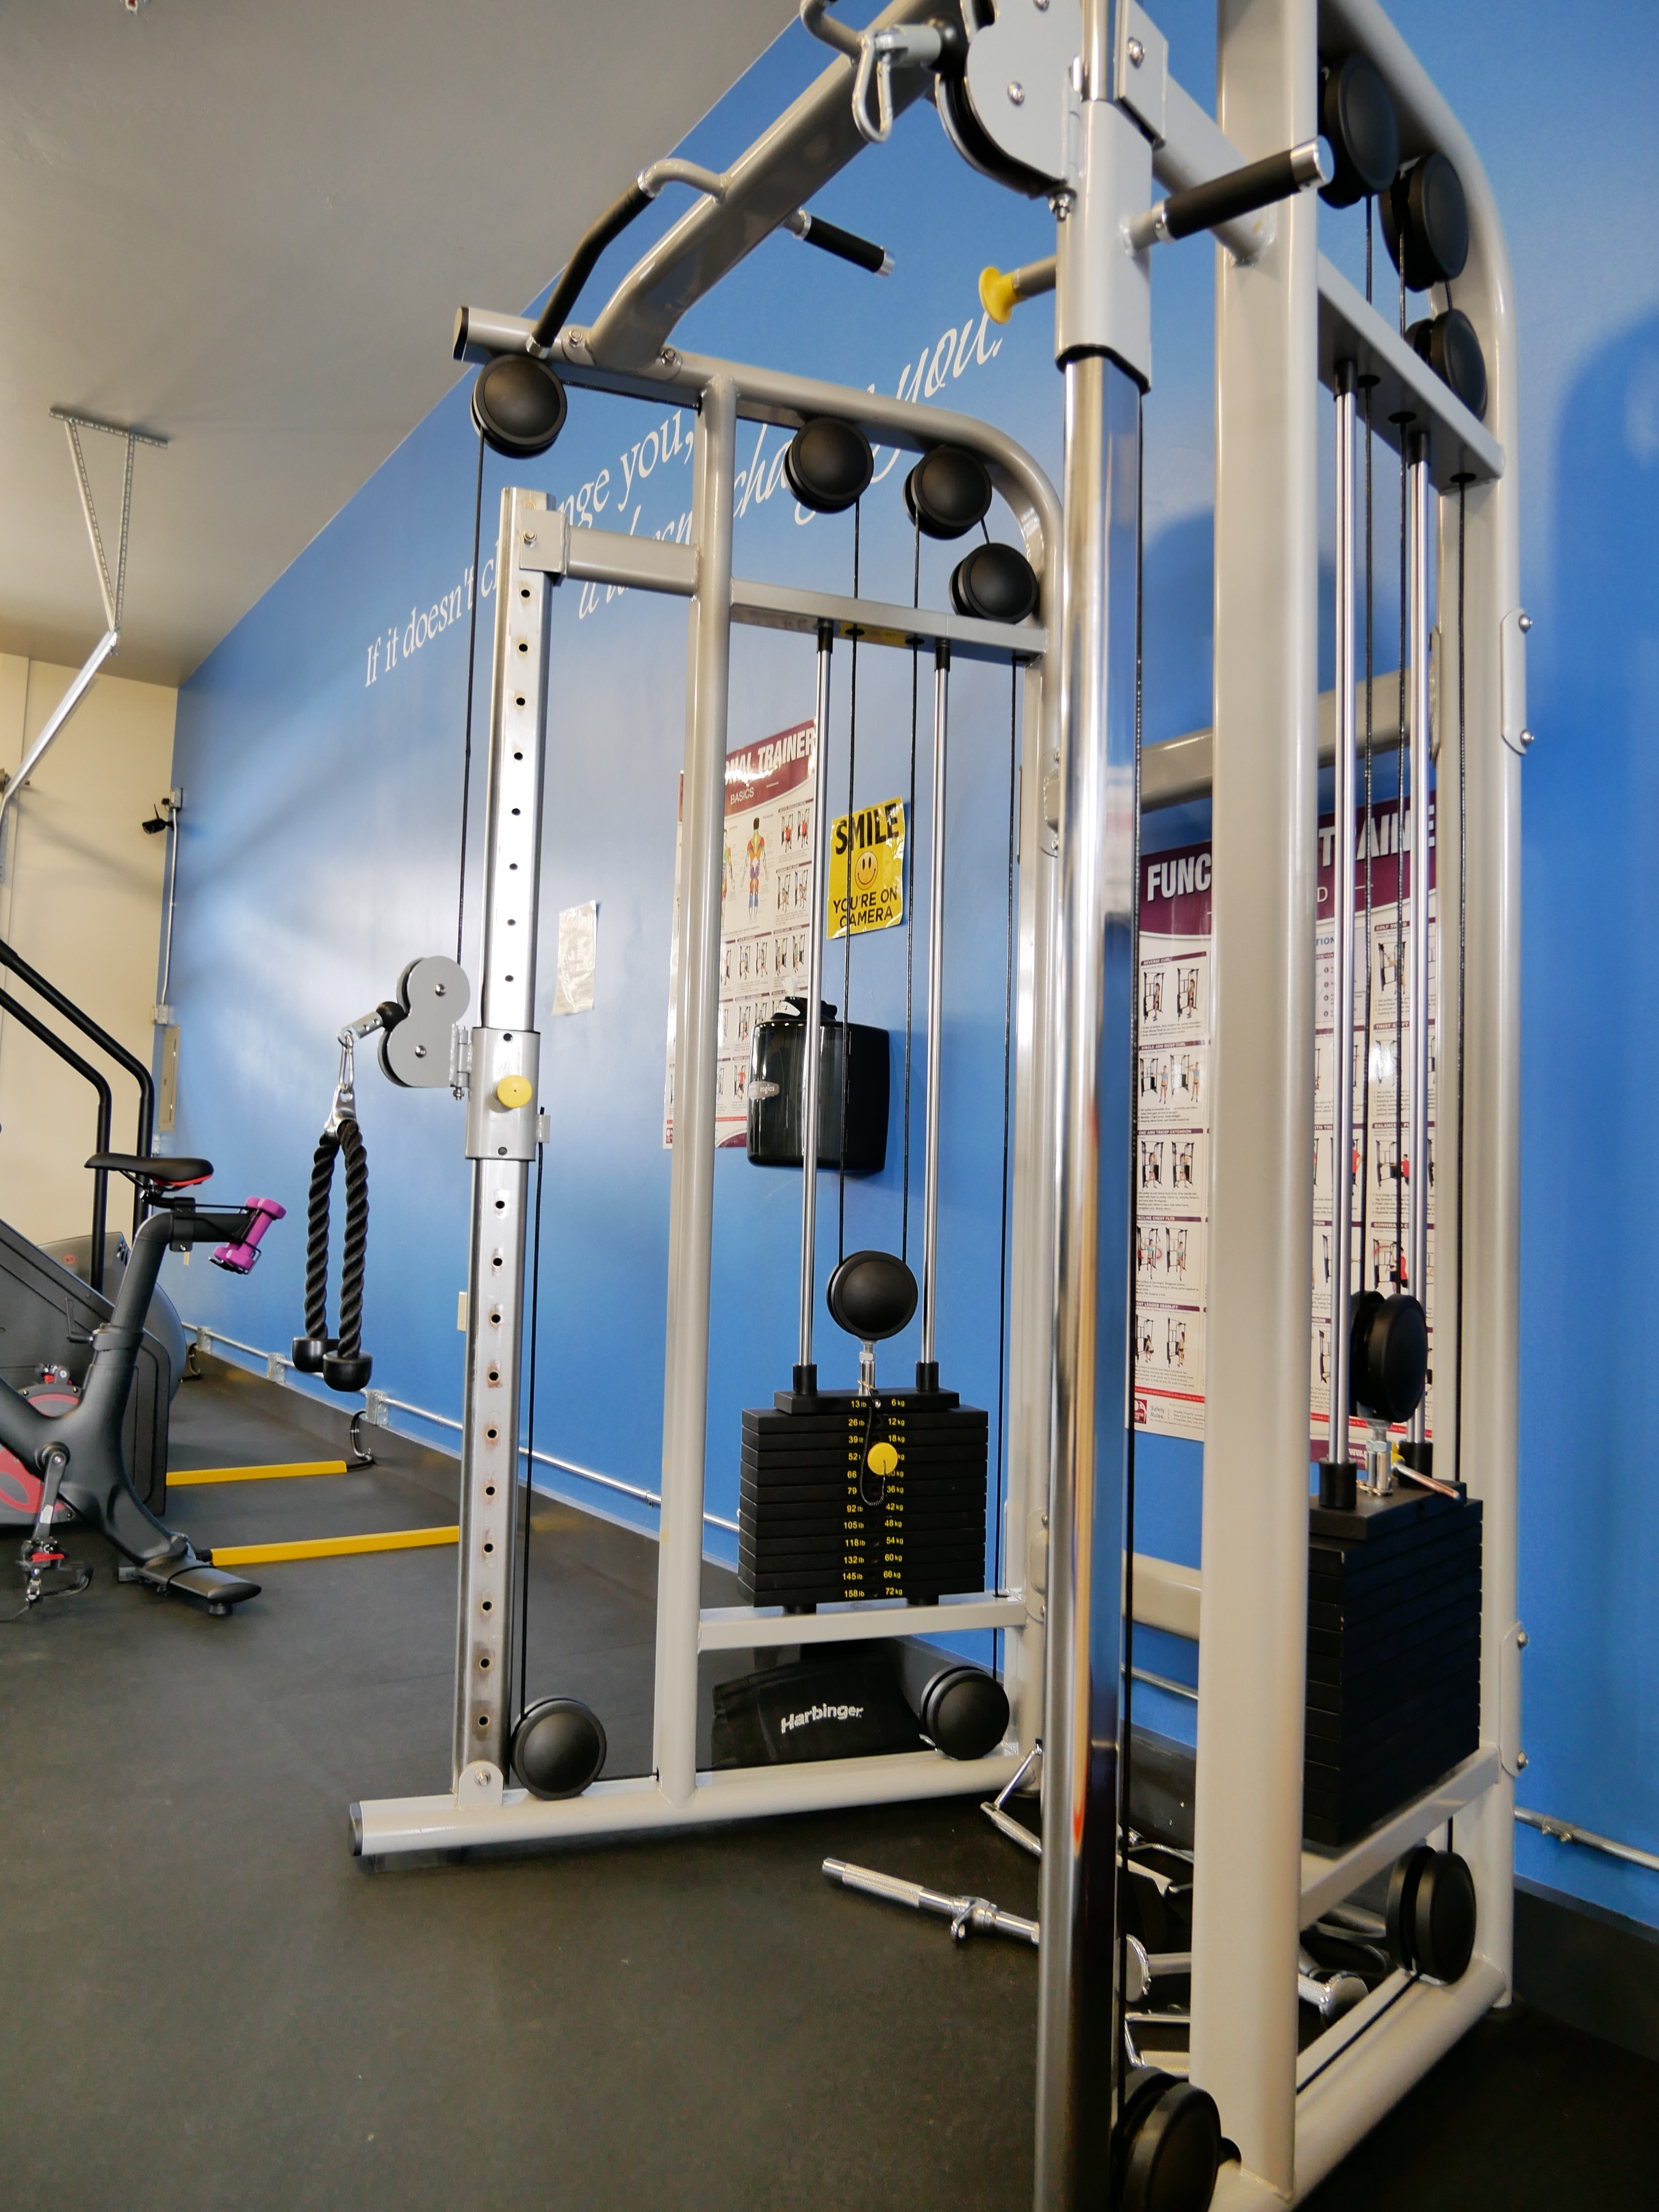 Dual Functional trainer at gym. fitness & training.jpg